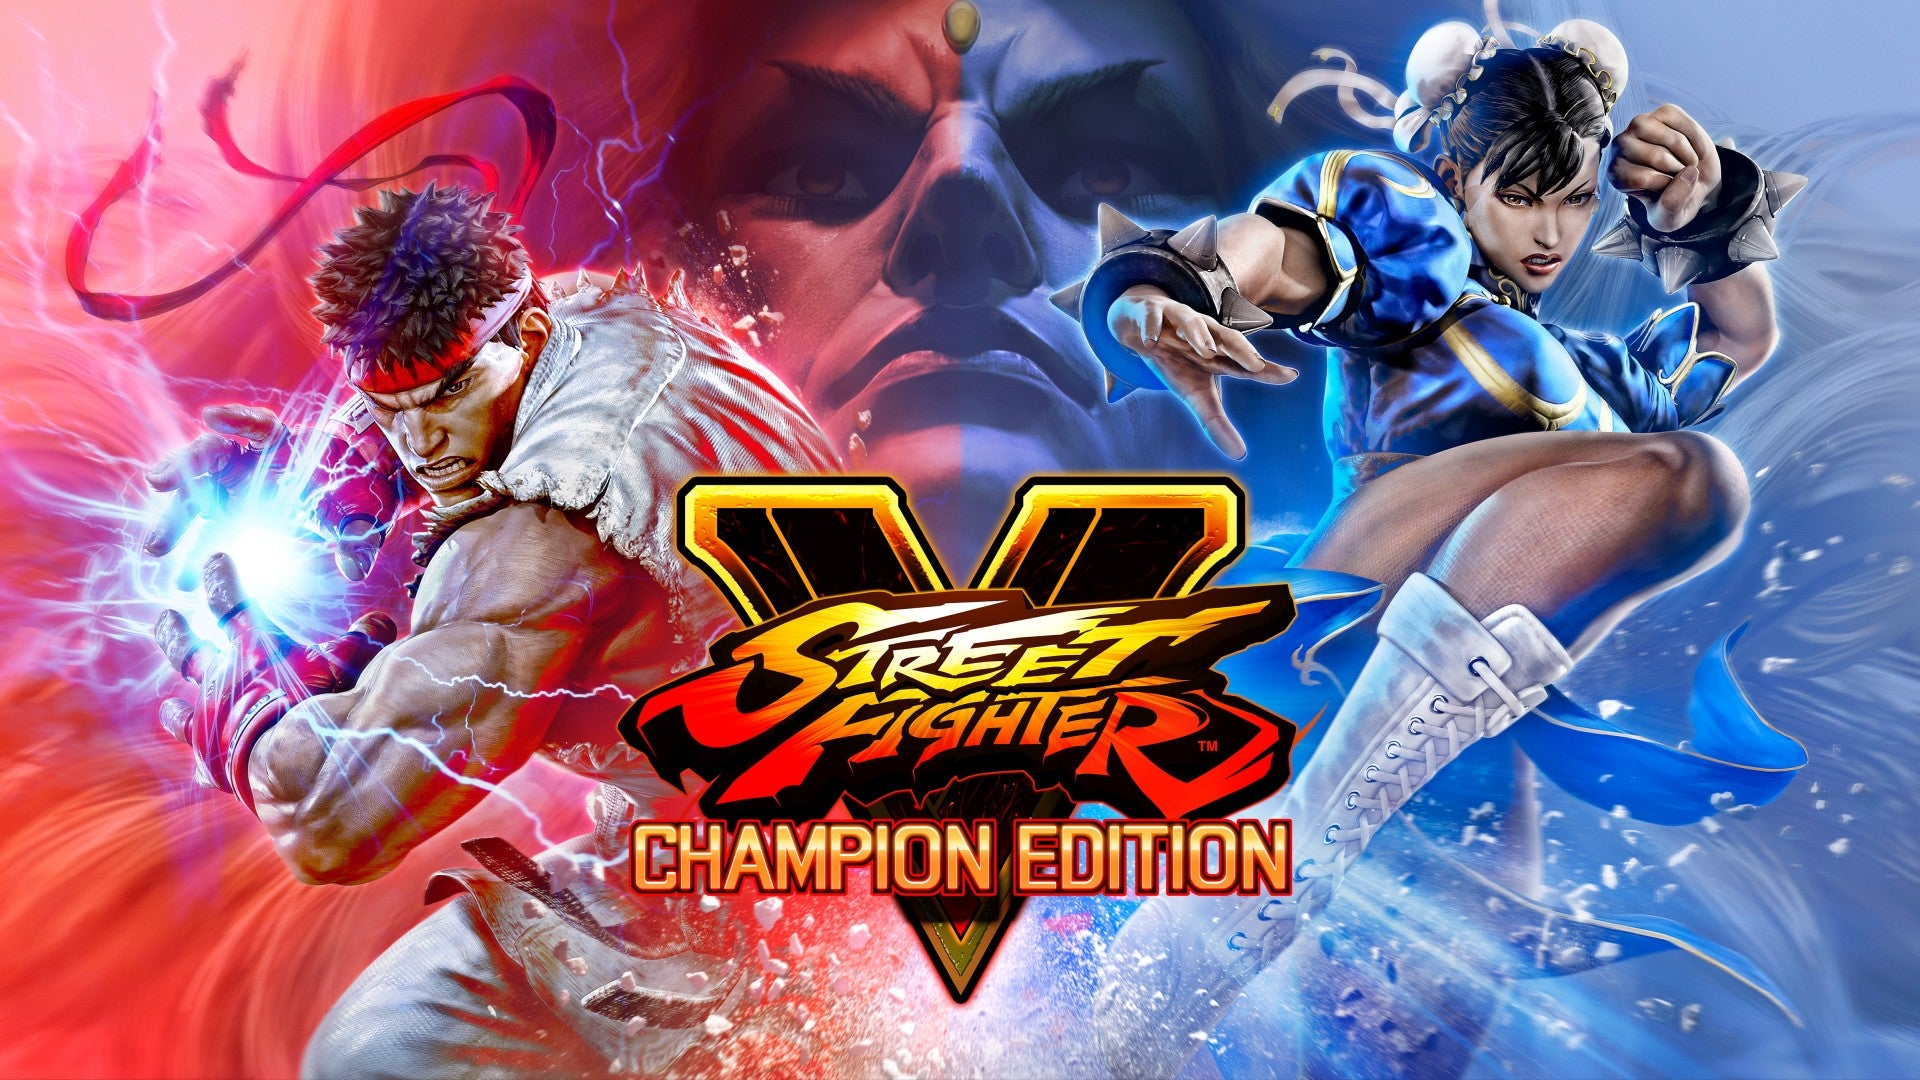 Capcom Has Announced Street Fighter V: Champion Edition, A Bundle That Includes Almost Everything Re